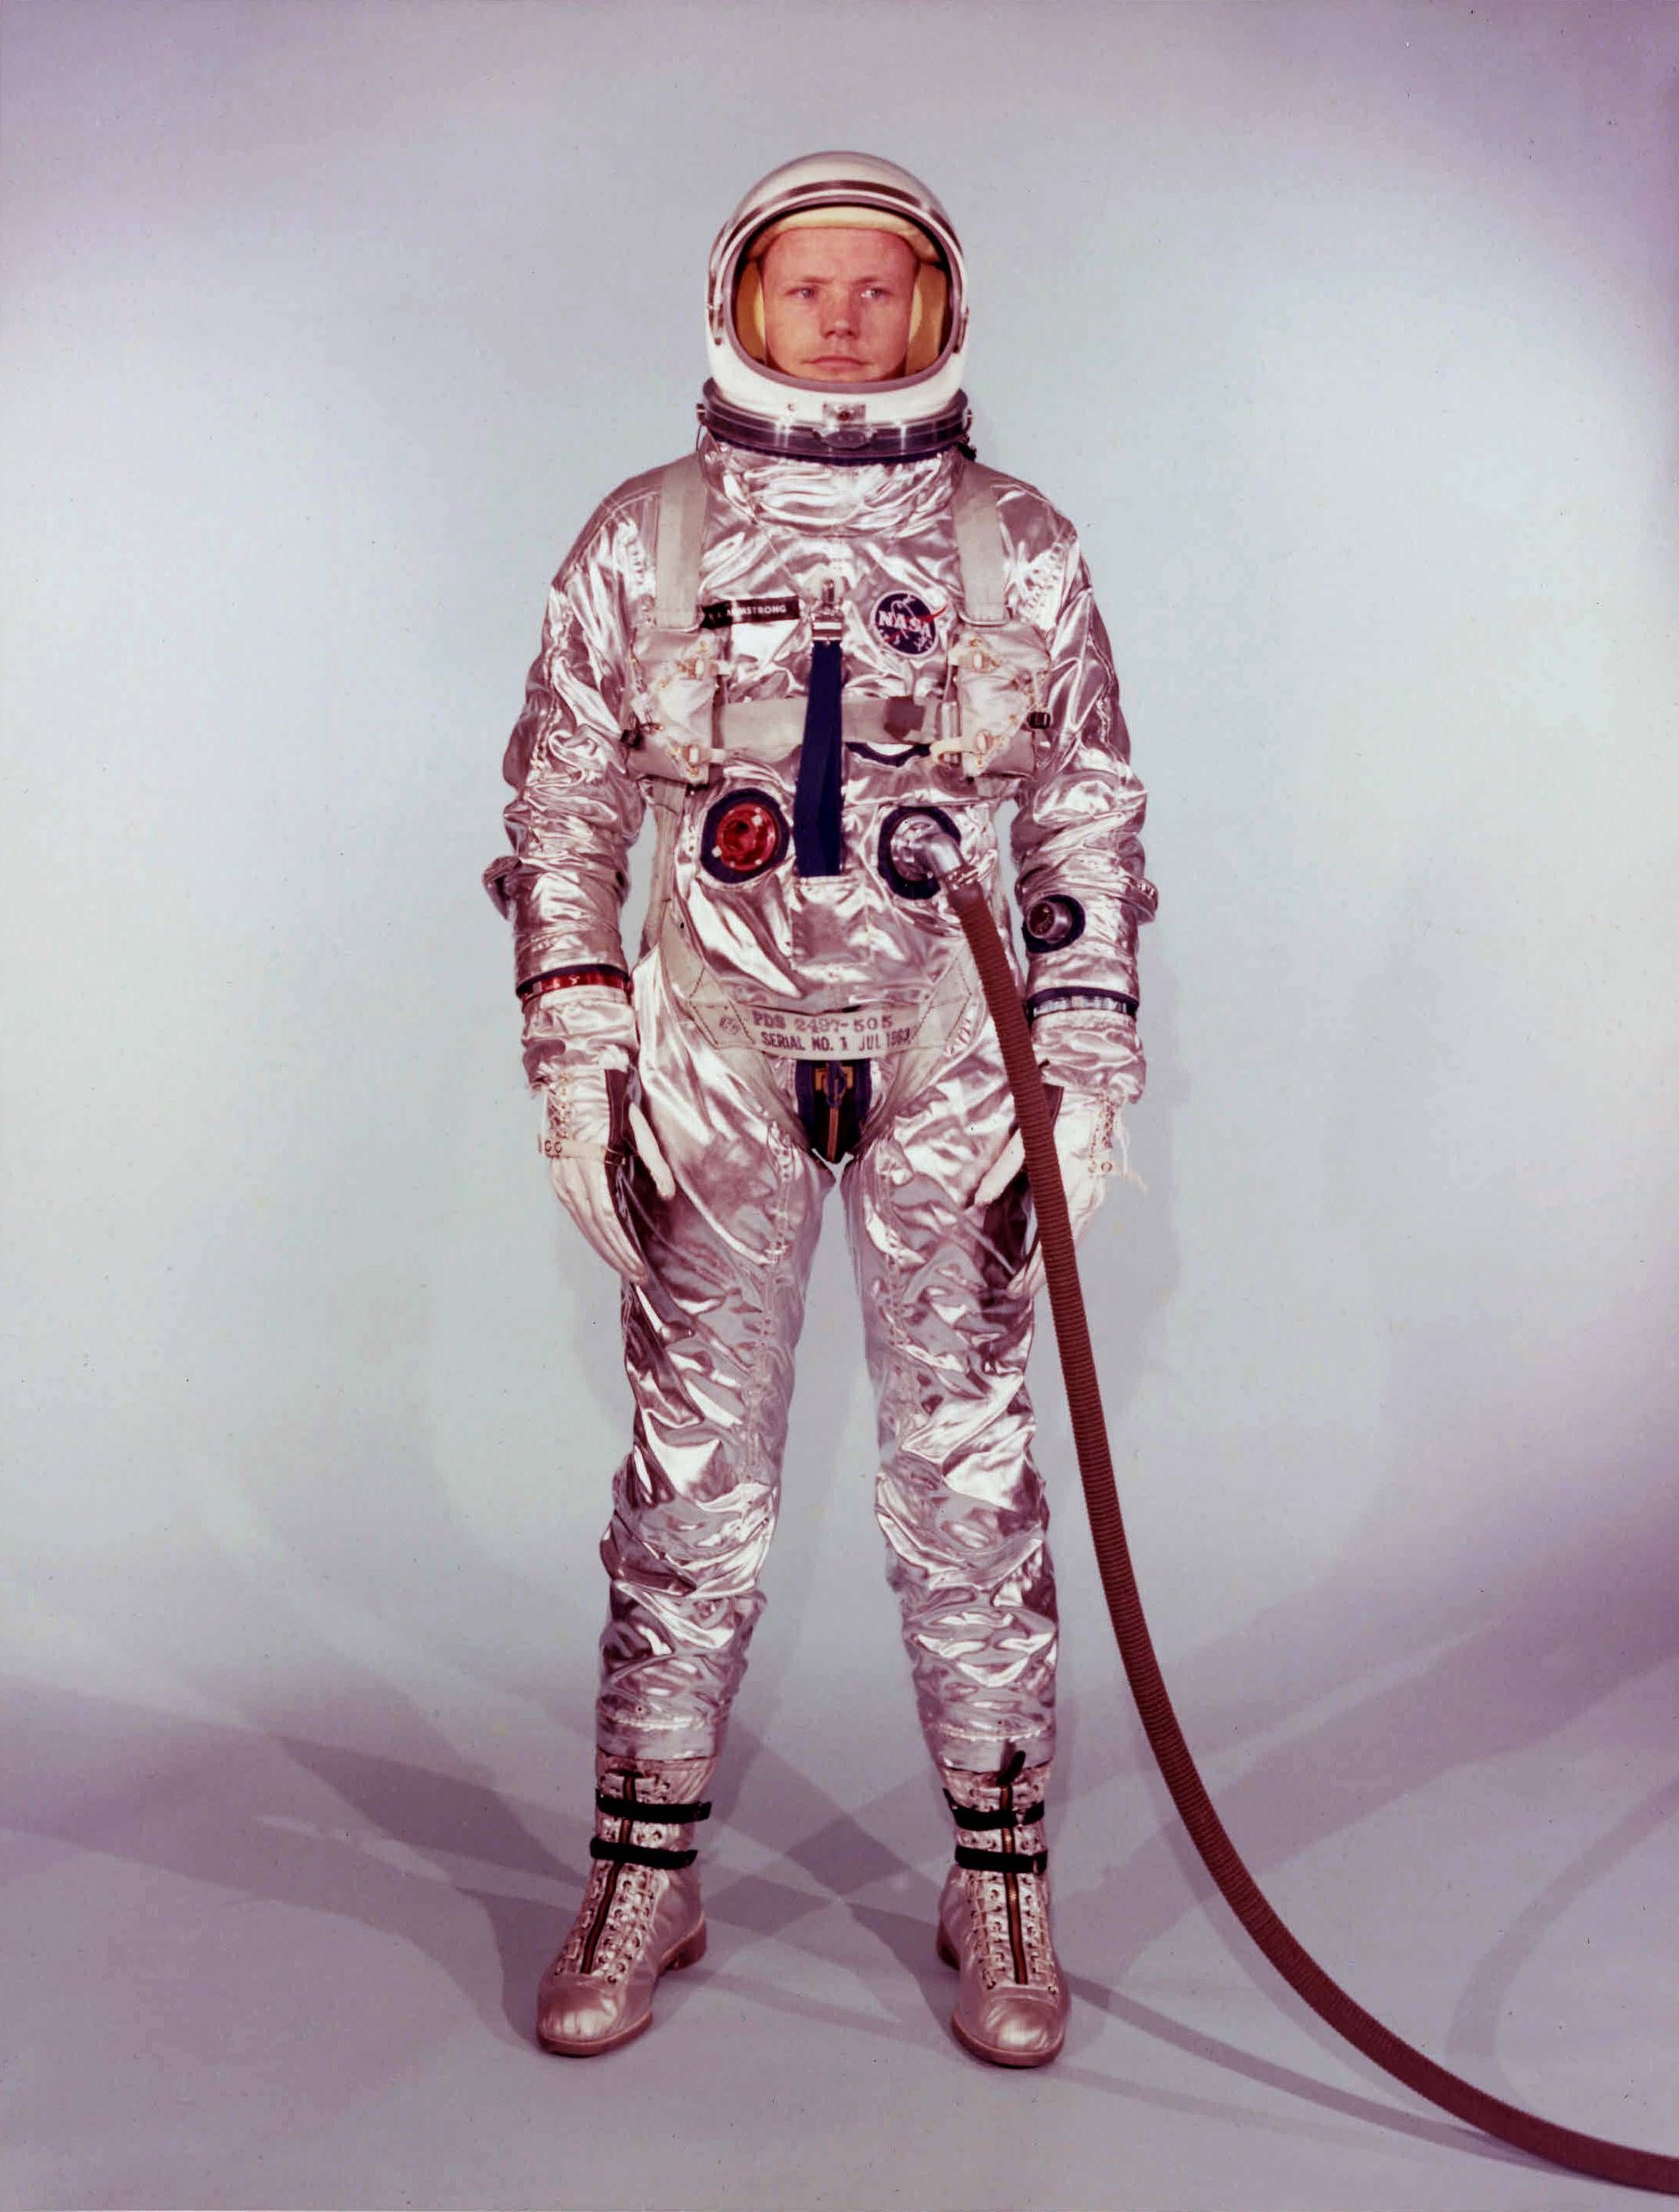 Neil Armstrong in his Gemini 8 spacesuit 1966 2166x2854